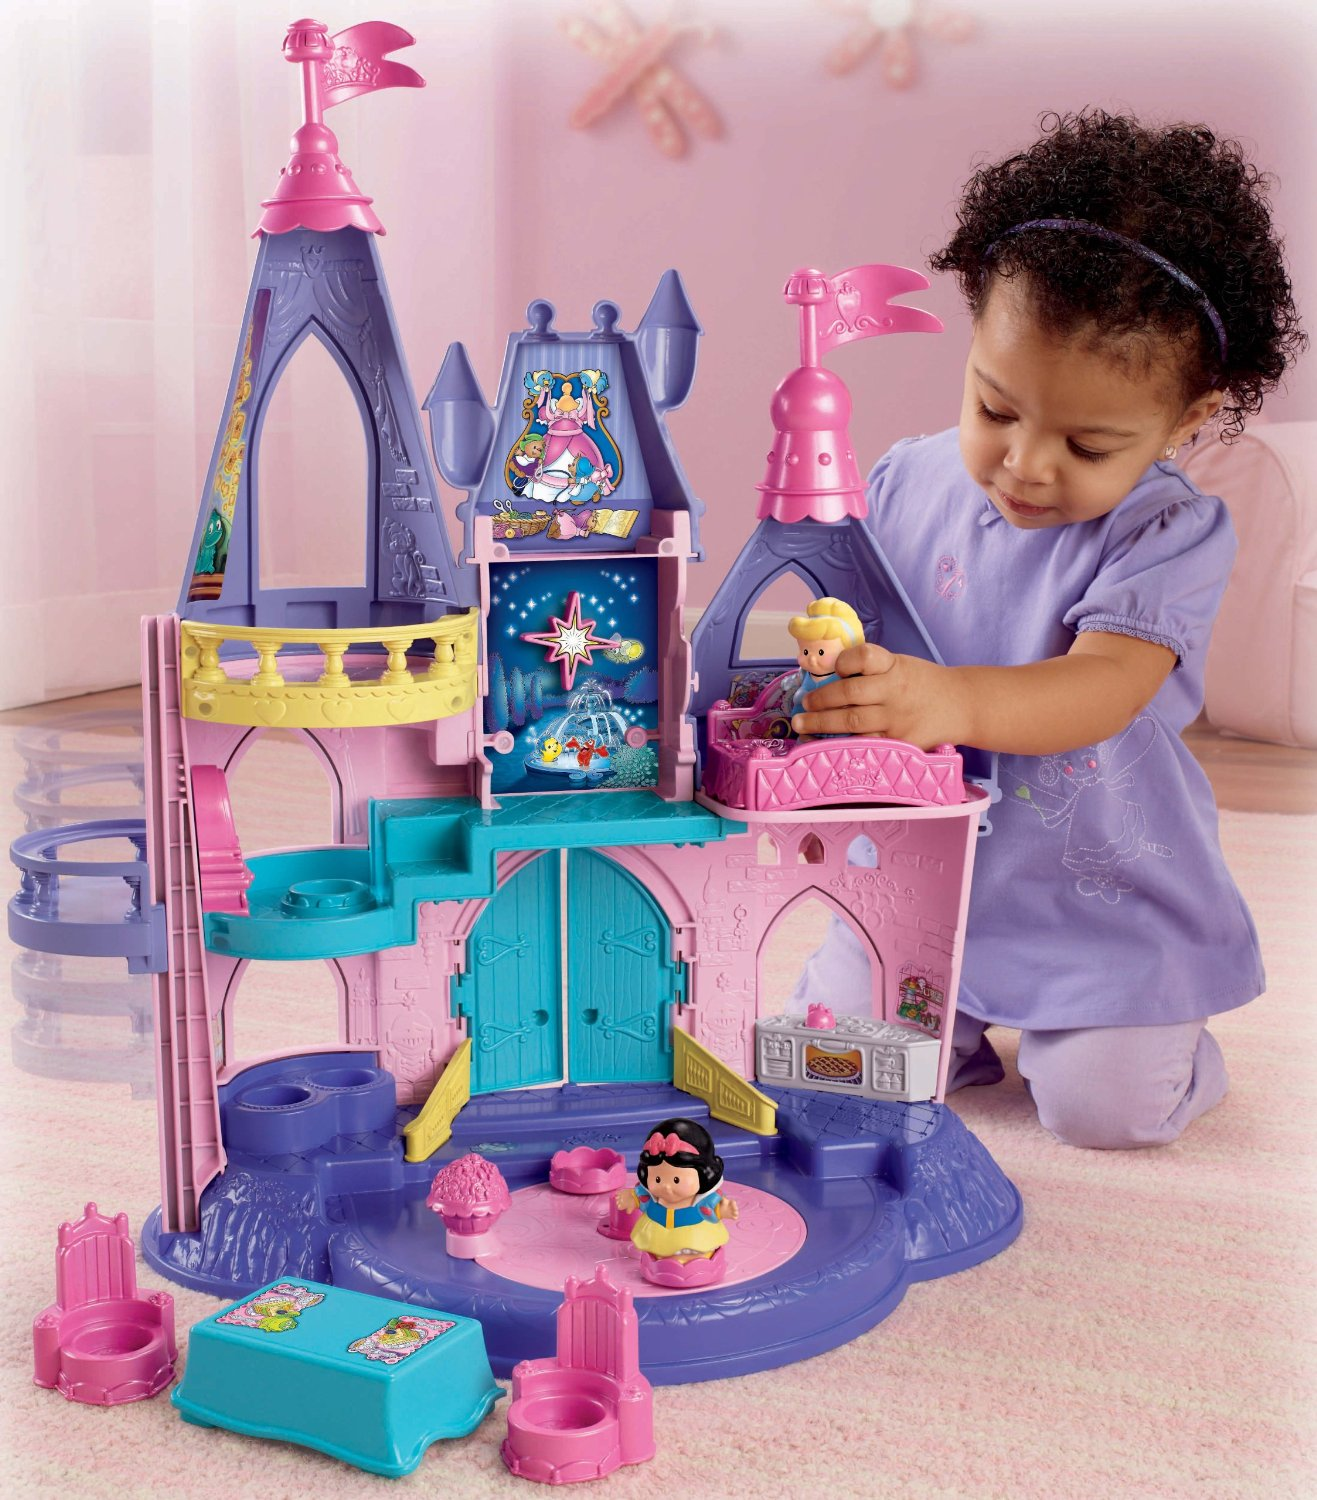 Best T Ideas For Three Year Old Girls A T Guide